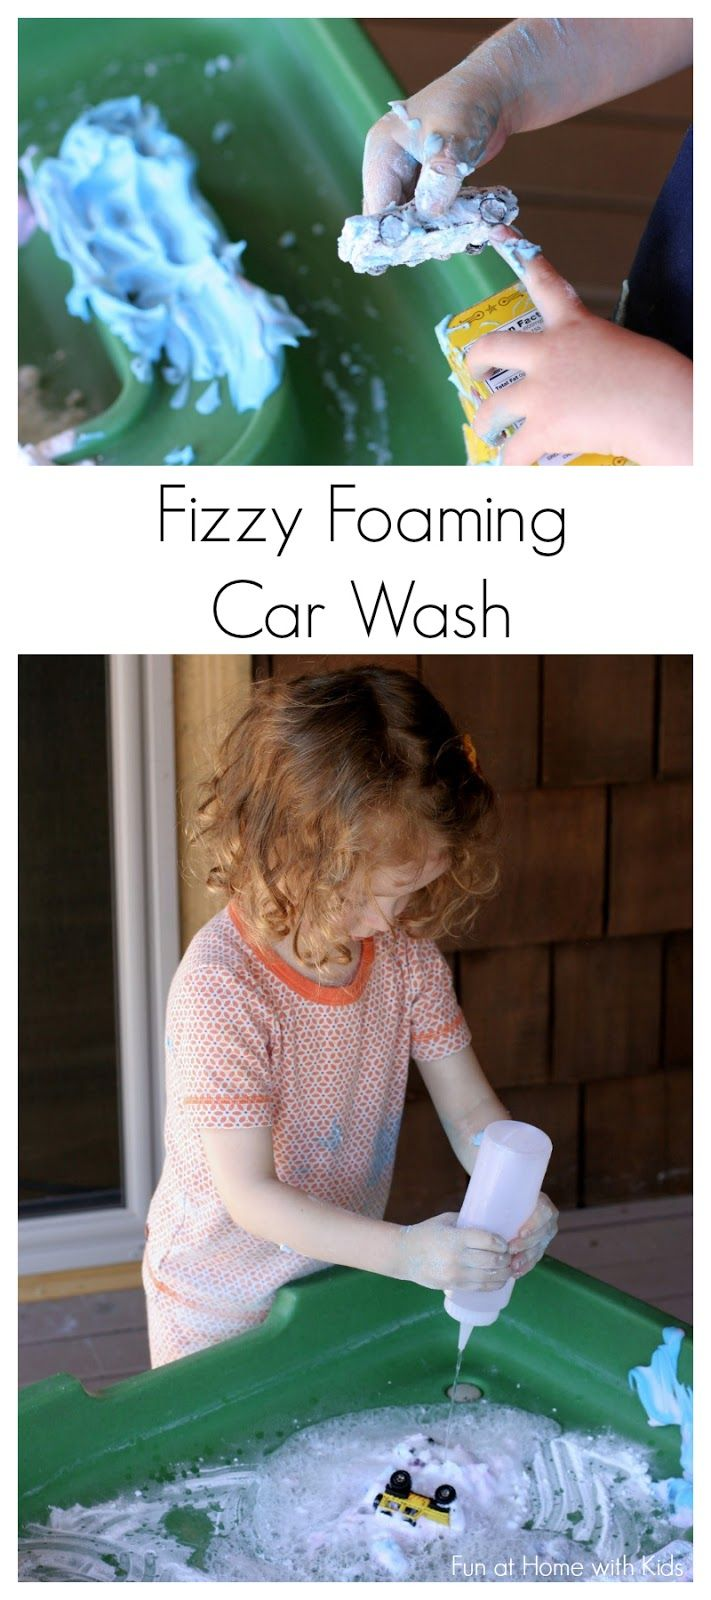 Co color in cars activity - Fizzy Foaming Car Wash